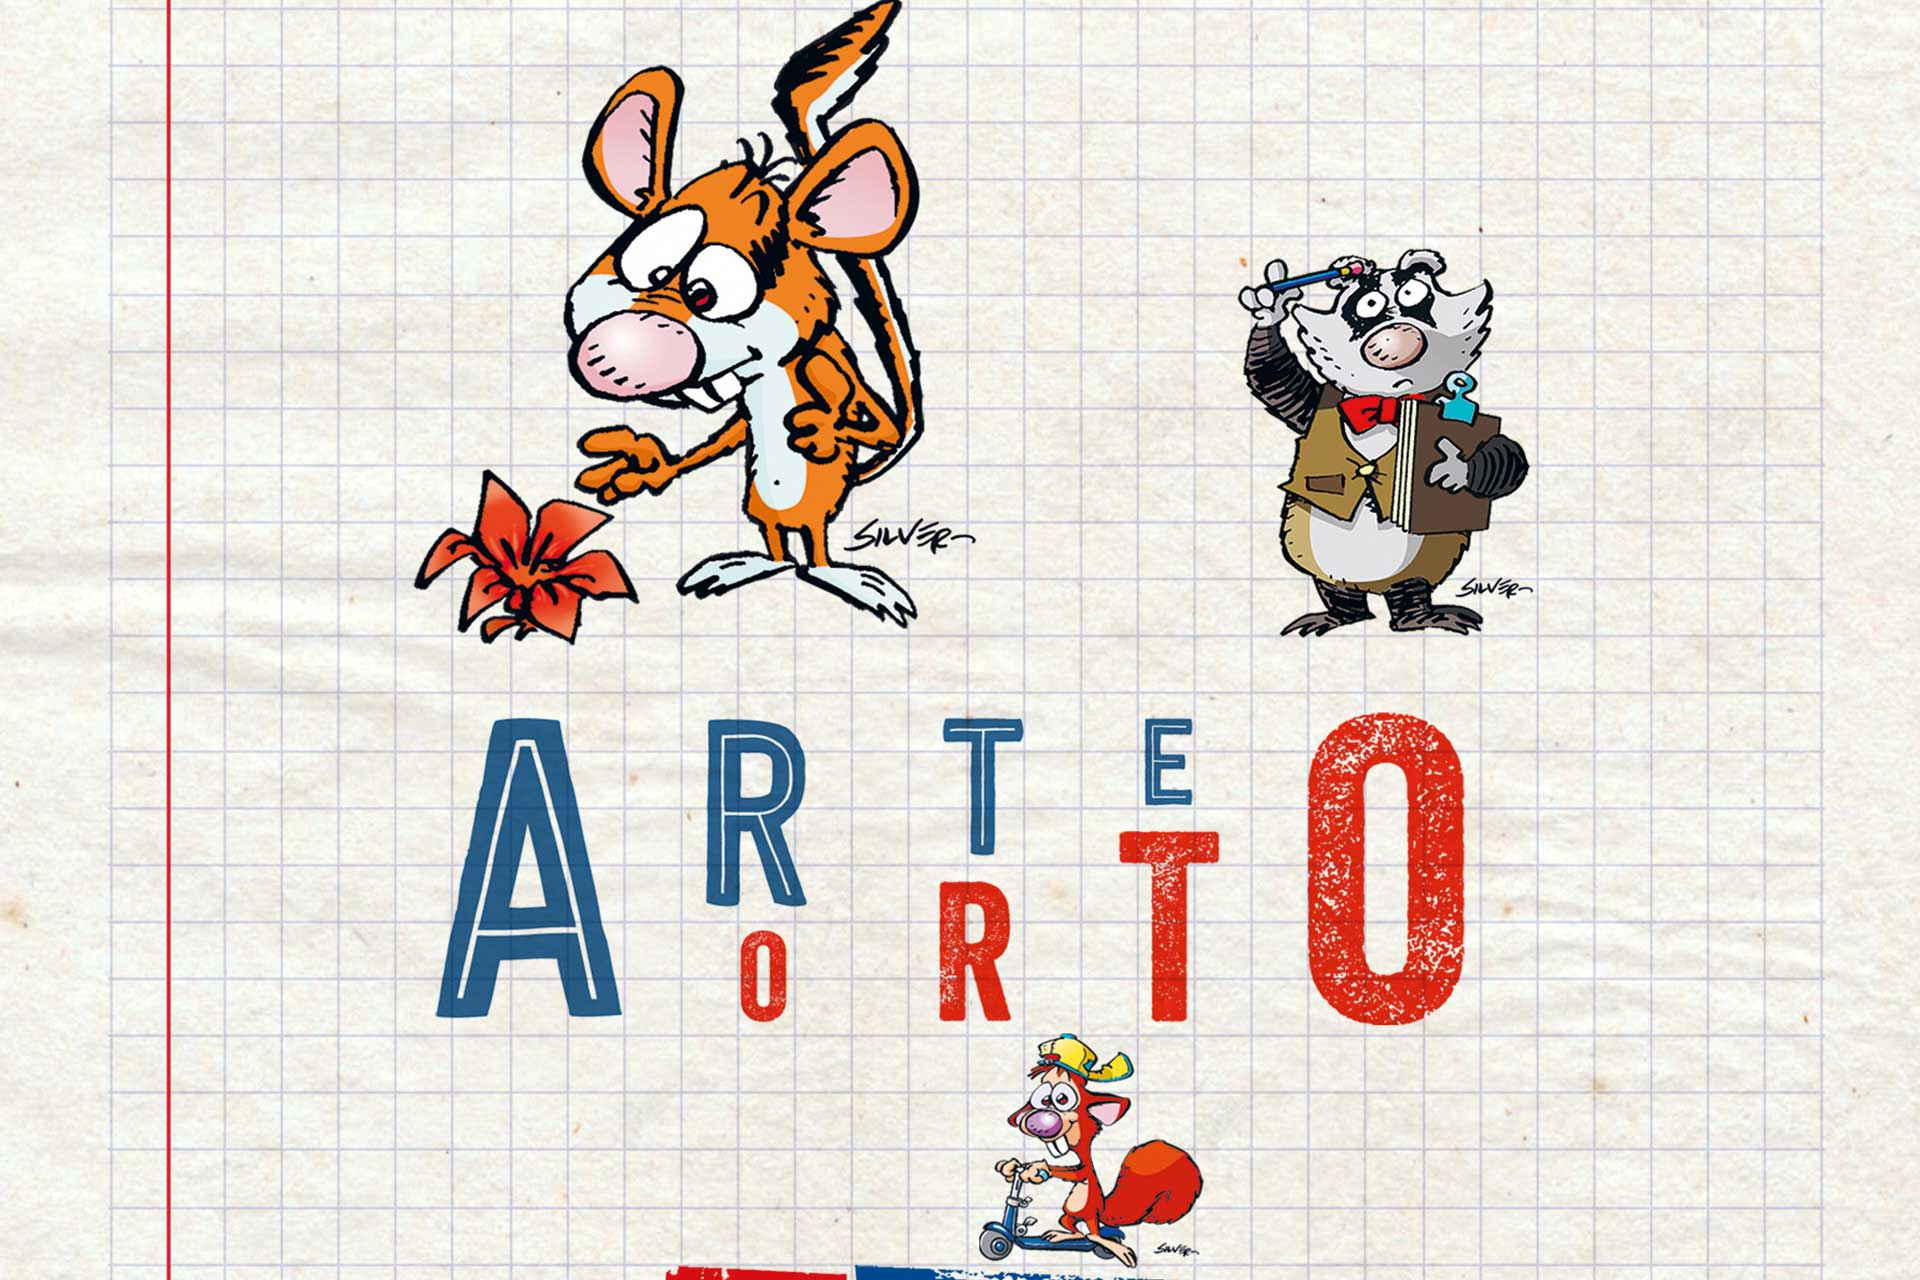 Arteorto For School